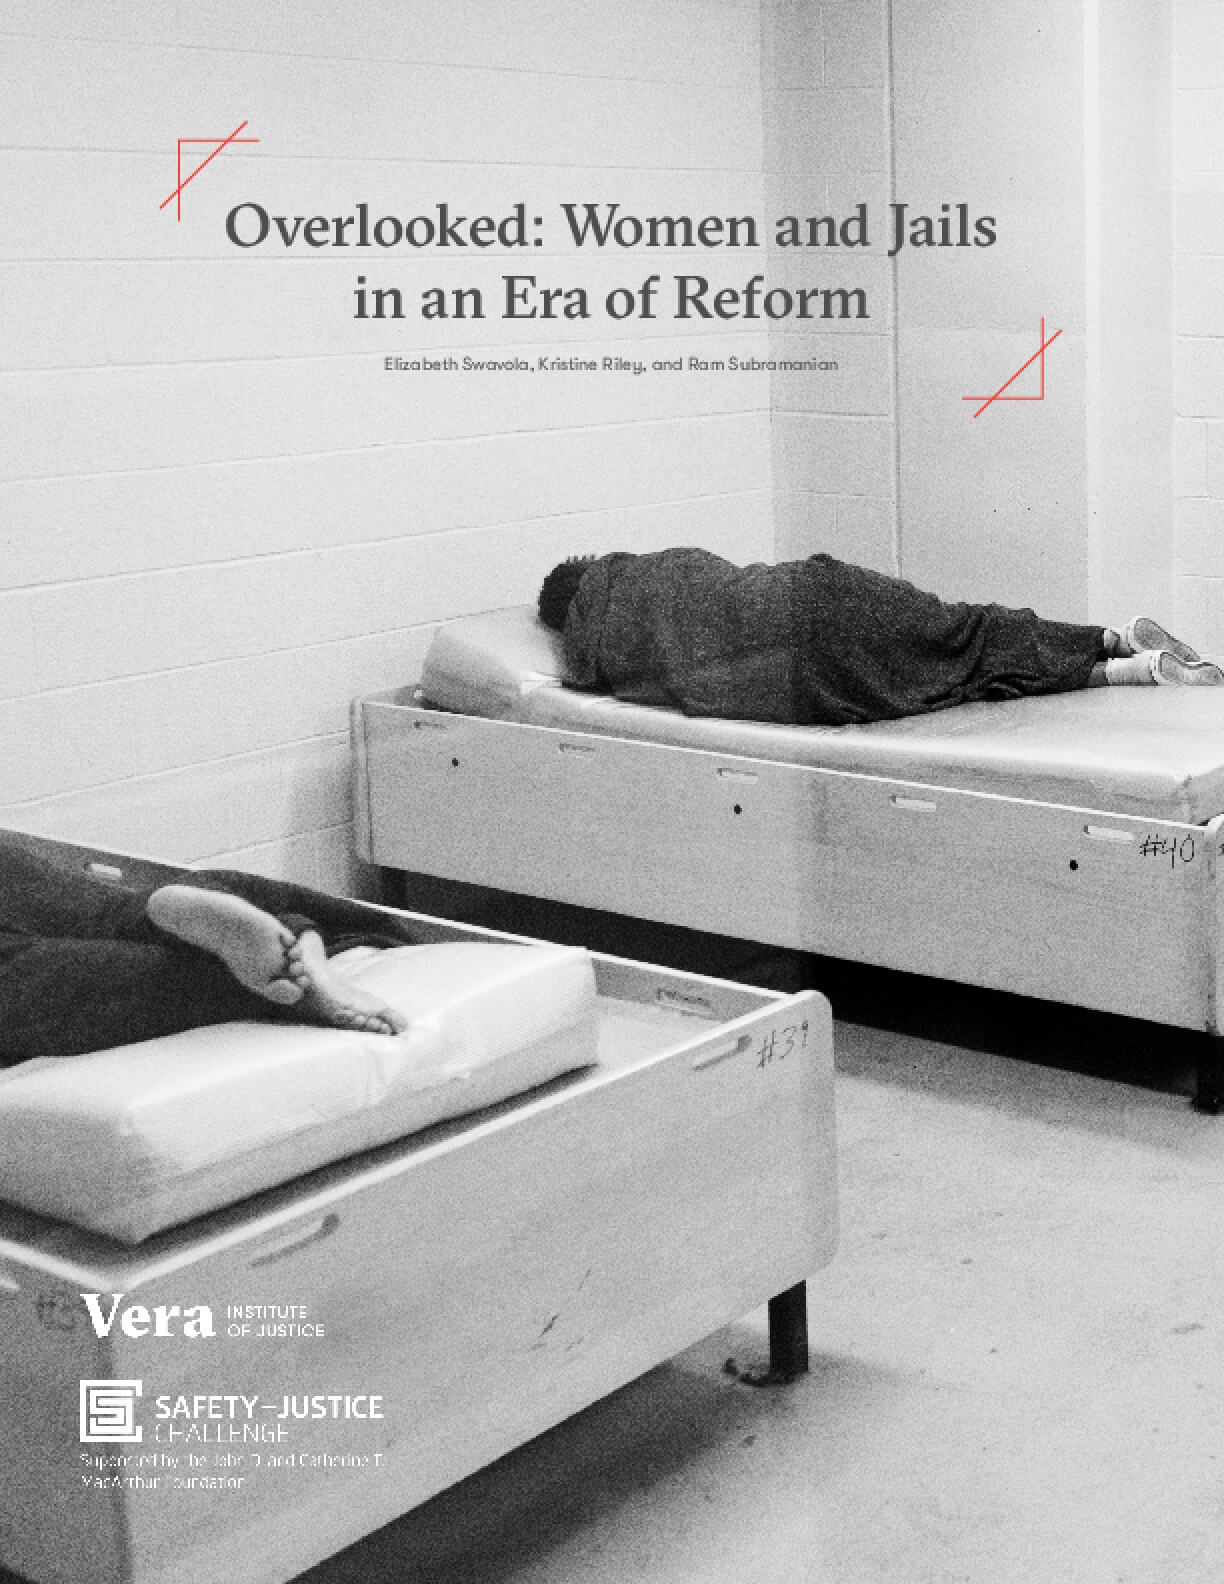 Overlooked: Women and Jails in an Era of Reform